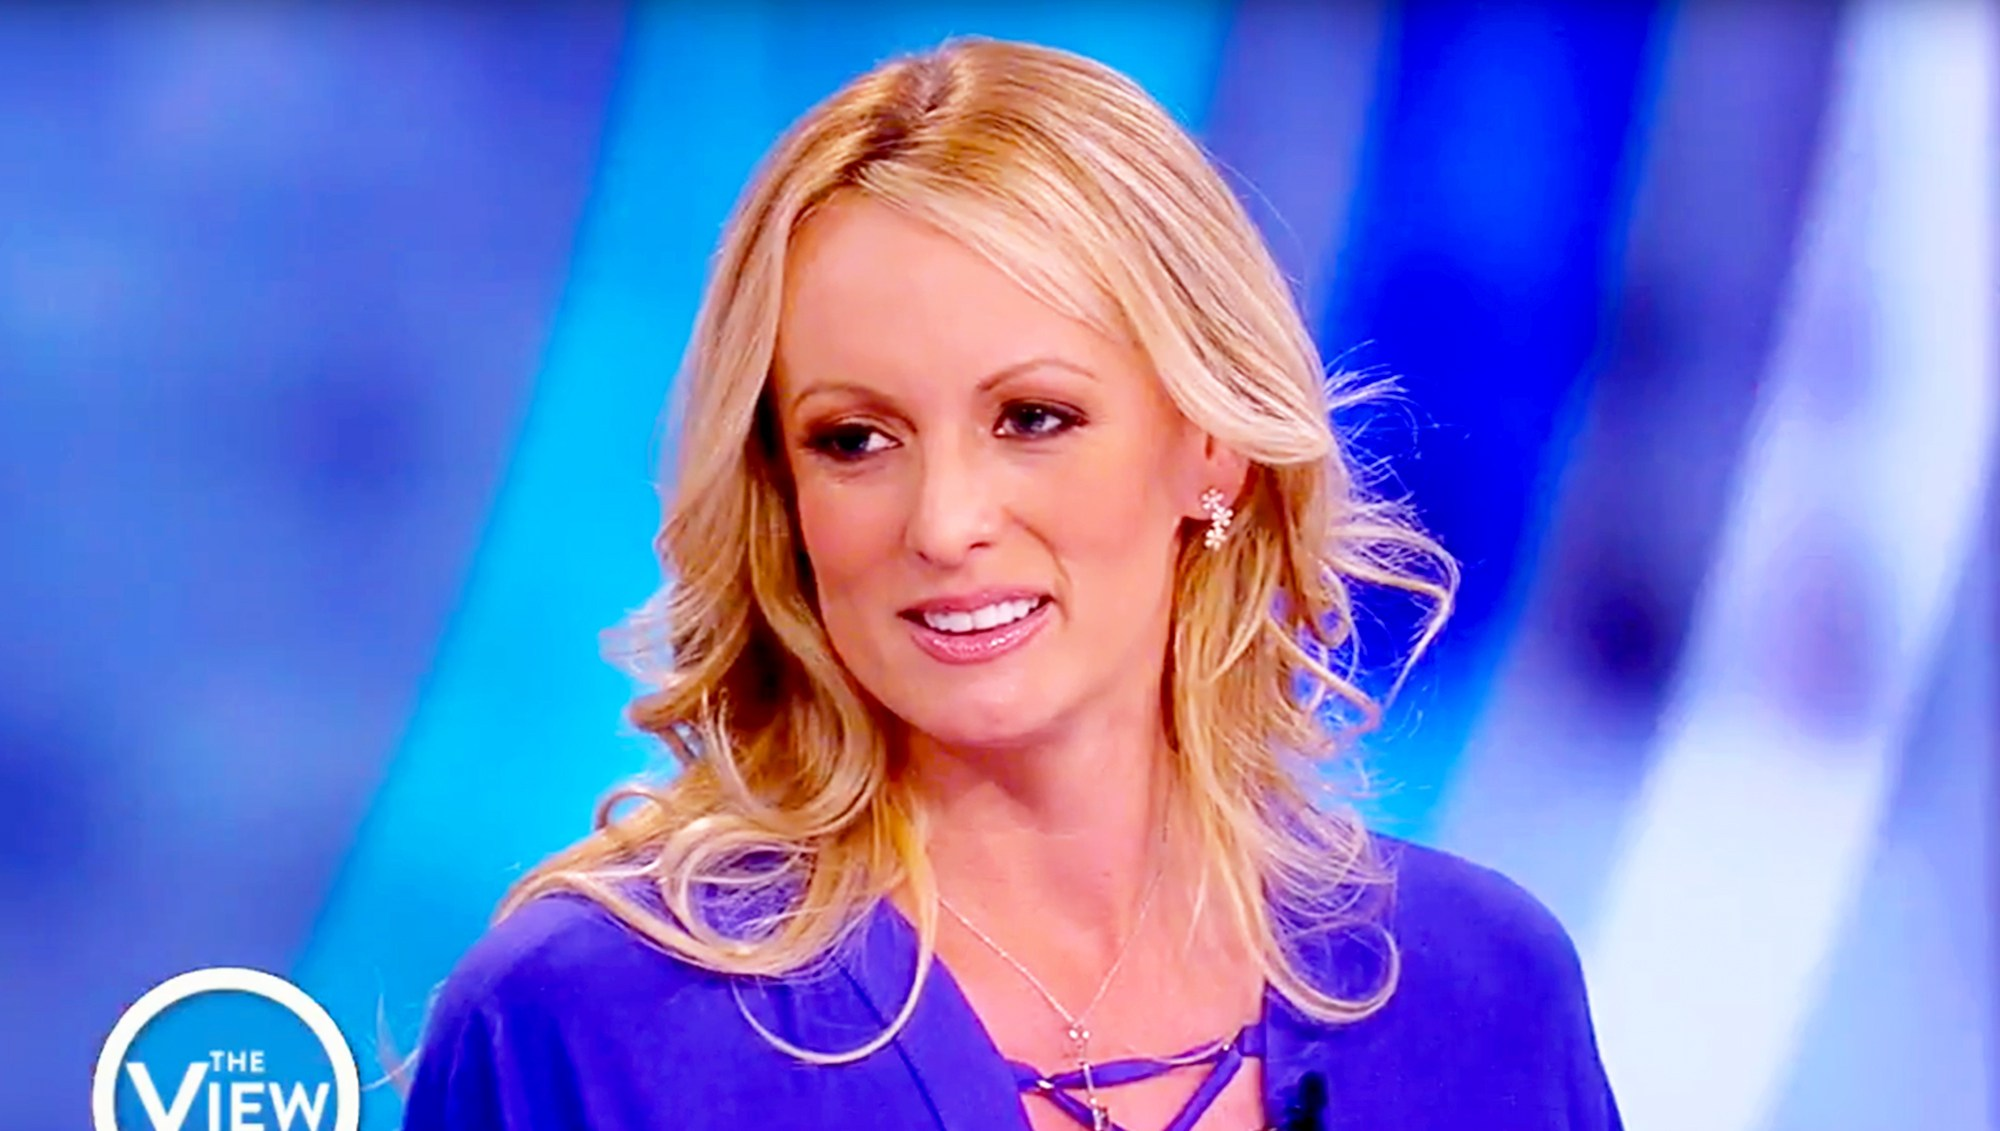 Stormy Daniels on 'The View'